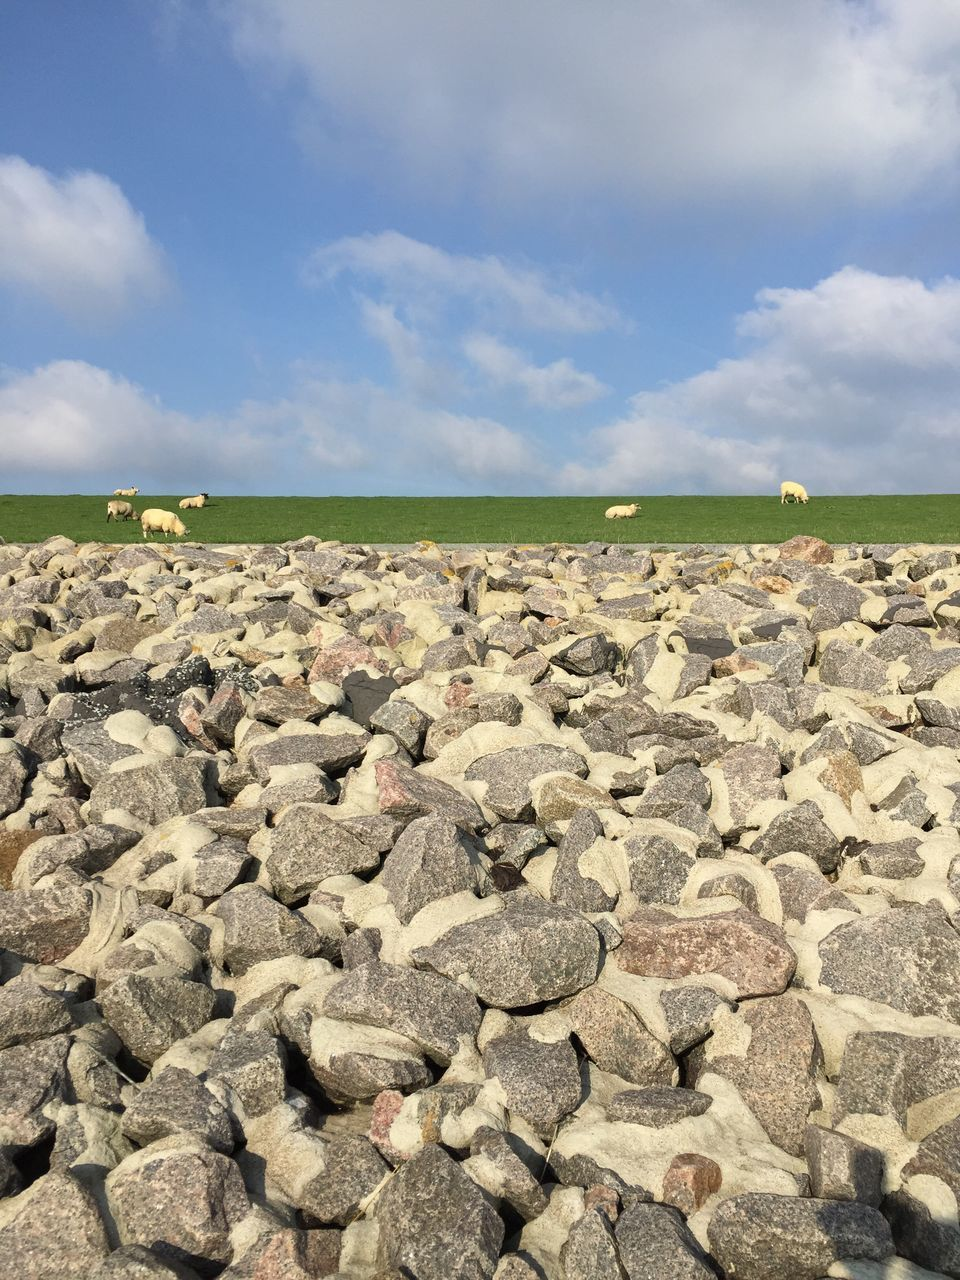 Sheep On Field Against Cloudy Sky With Rocks In Foreground